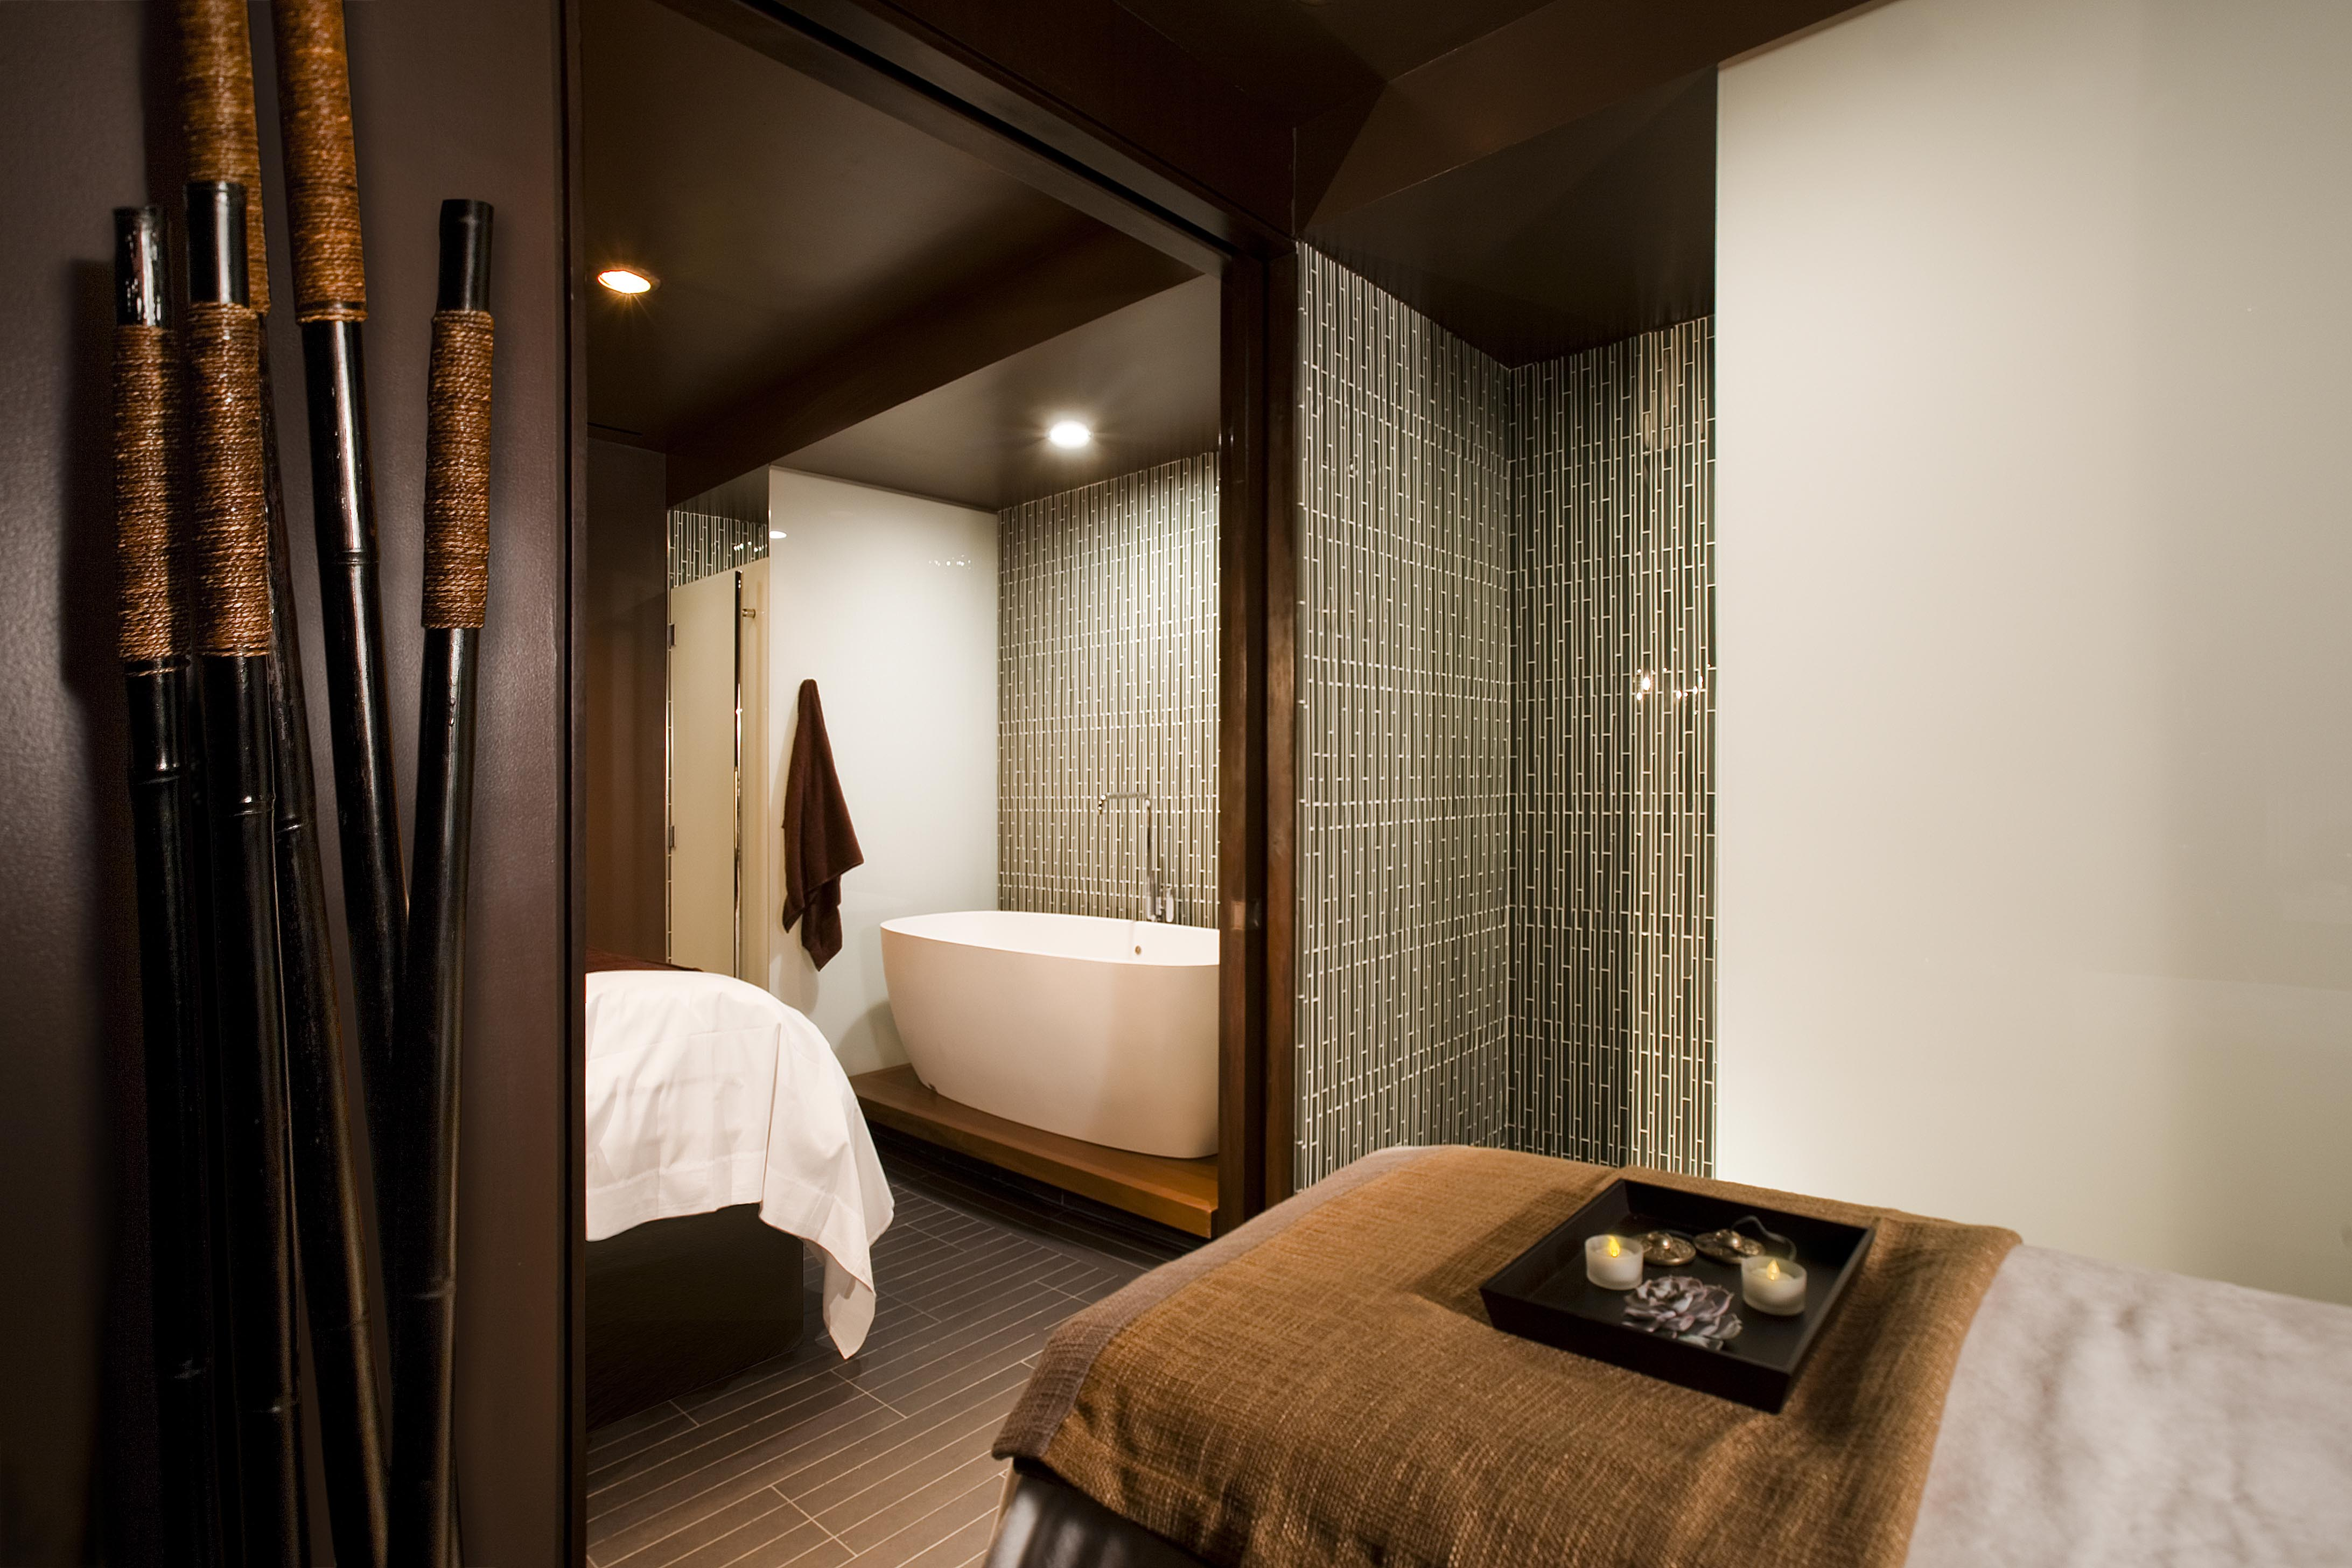 Robert Henry, rdh-architects.com, describes elements used in spa therapy design.